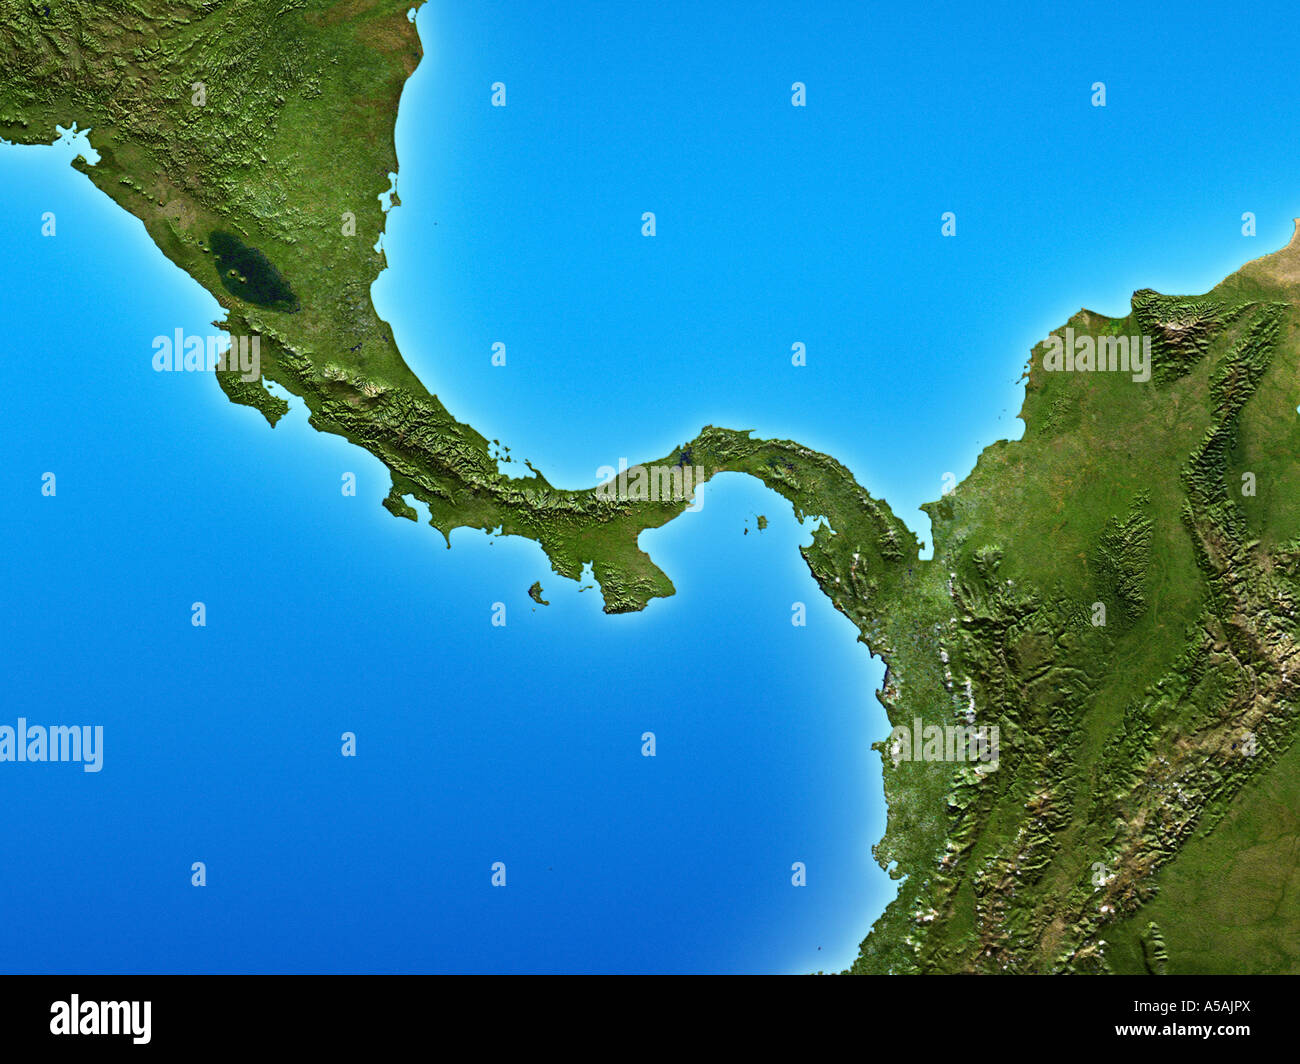 isthmus of central america stock photo 11252017 alamy